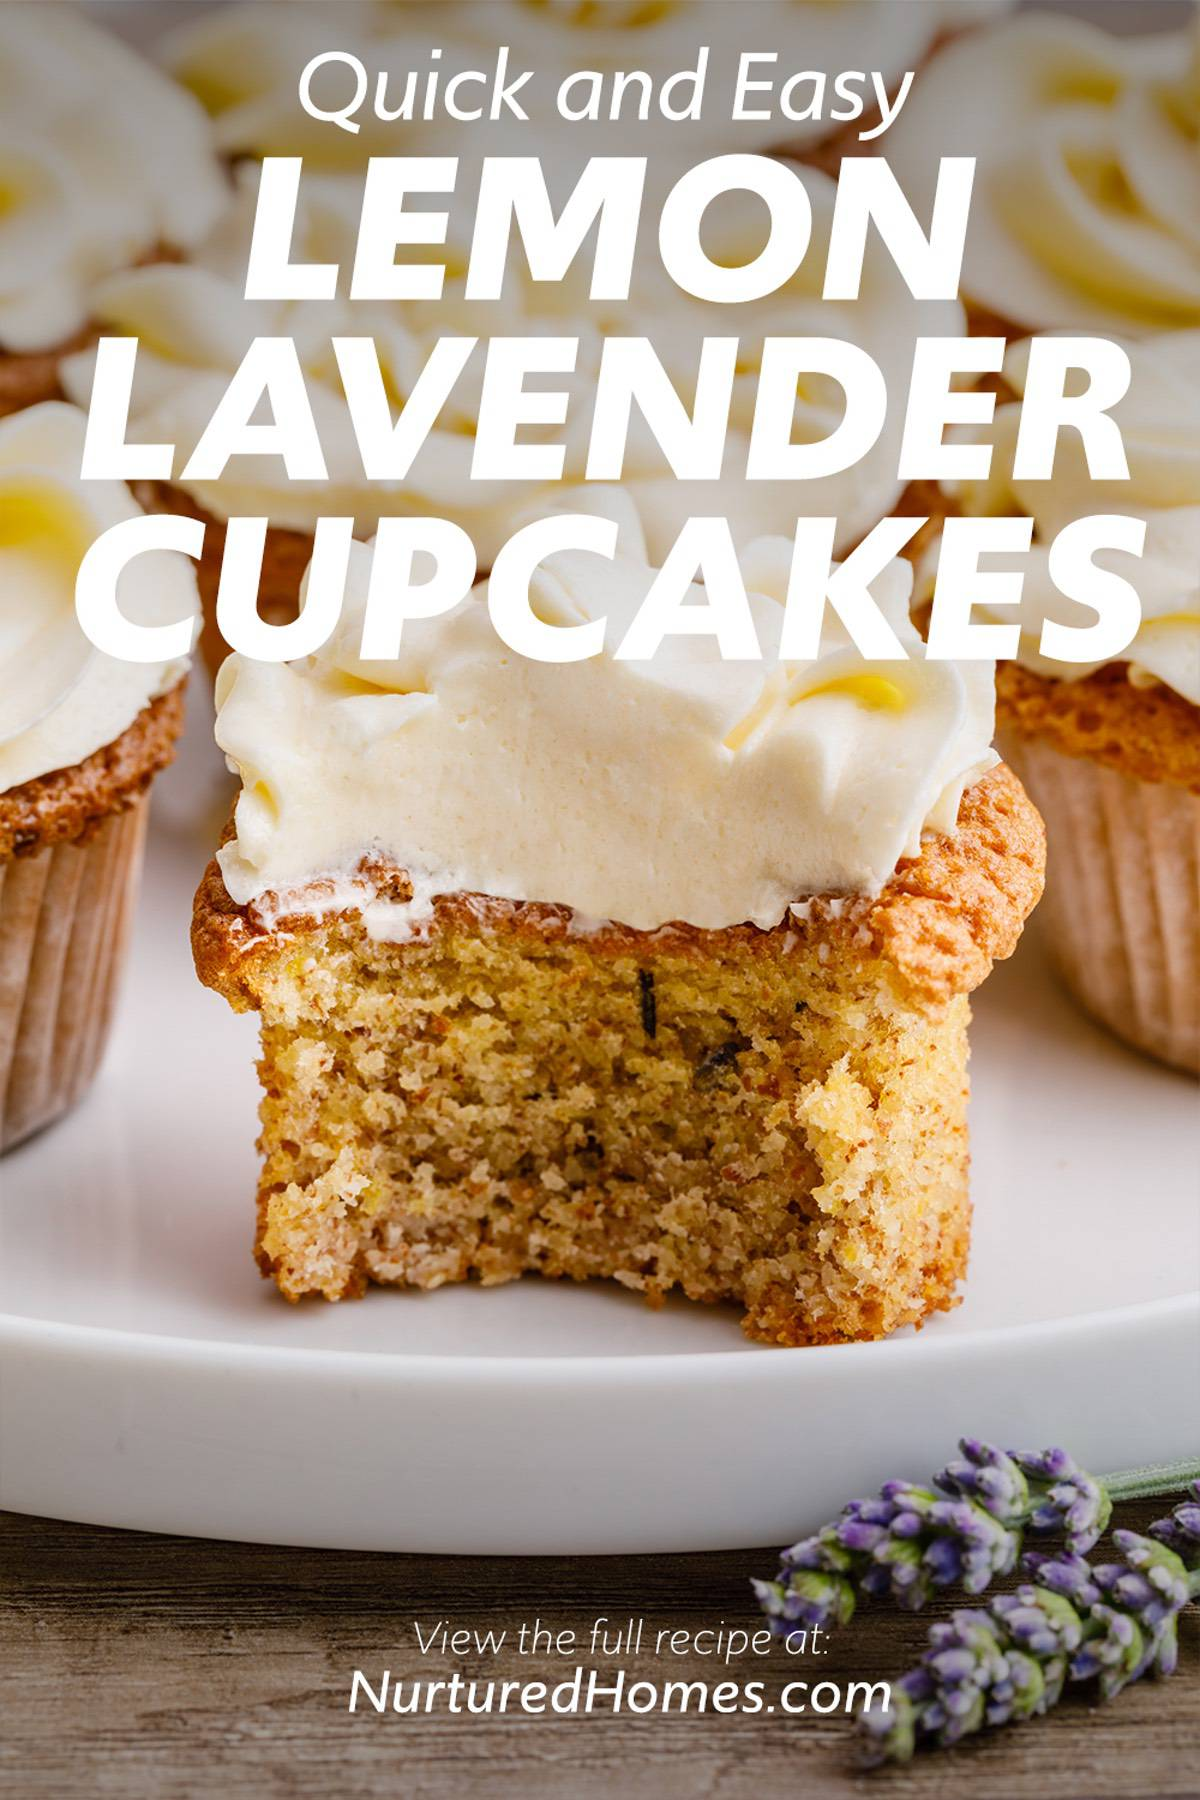 Quick and Easy Lemon Lavender Cupcakes